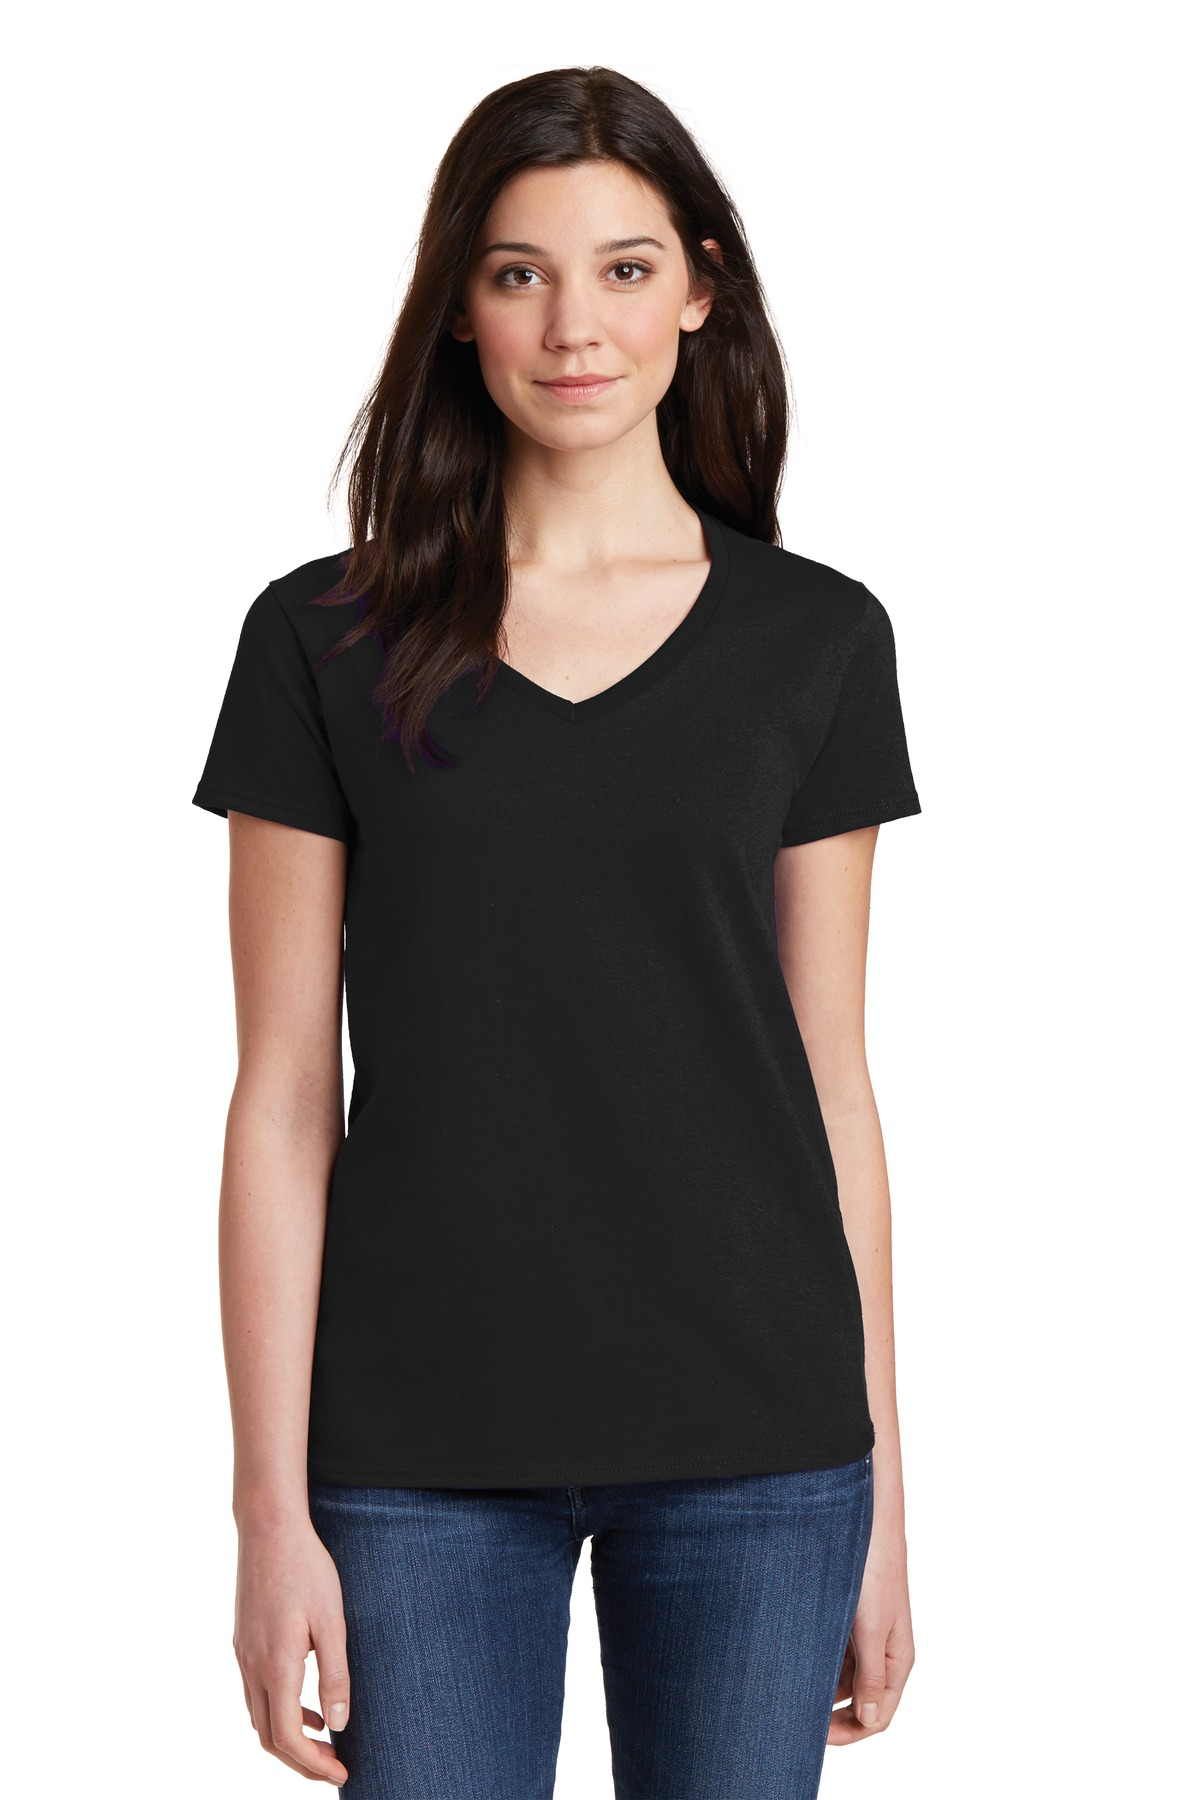 Gildan 5v00l ladies heavy cotton 100 cotton v neck t Womens black tee shirt